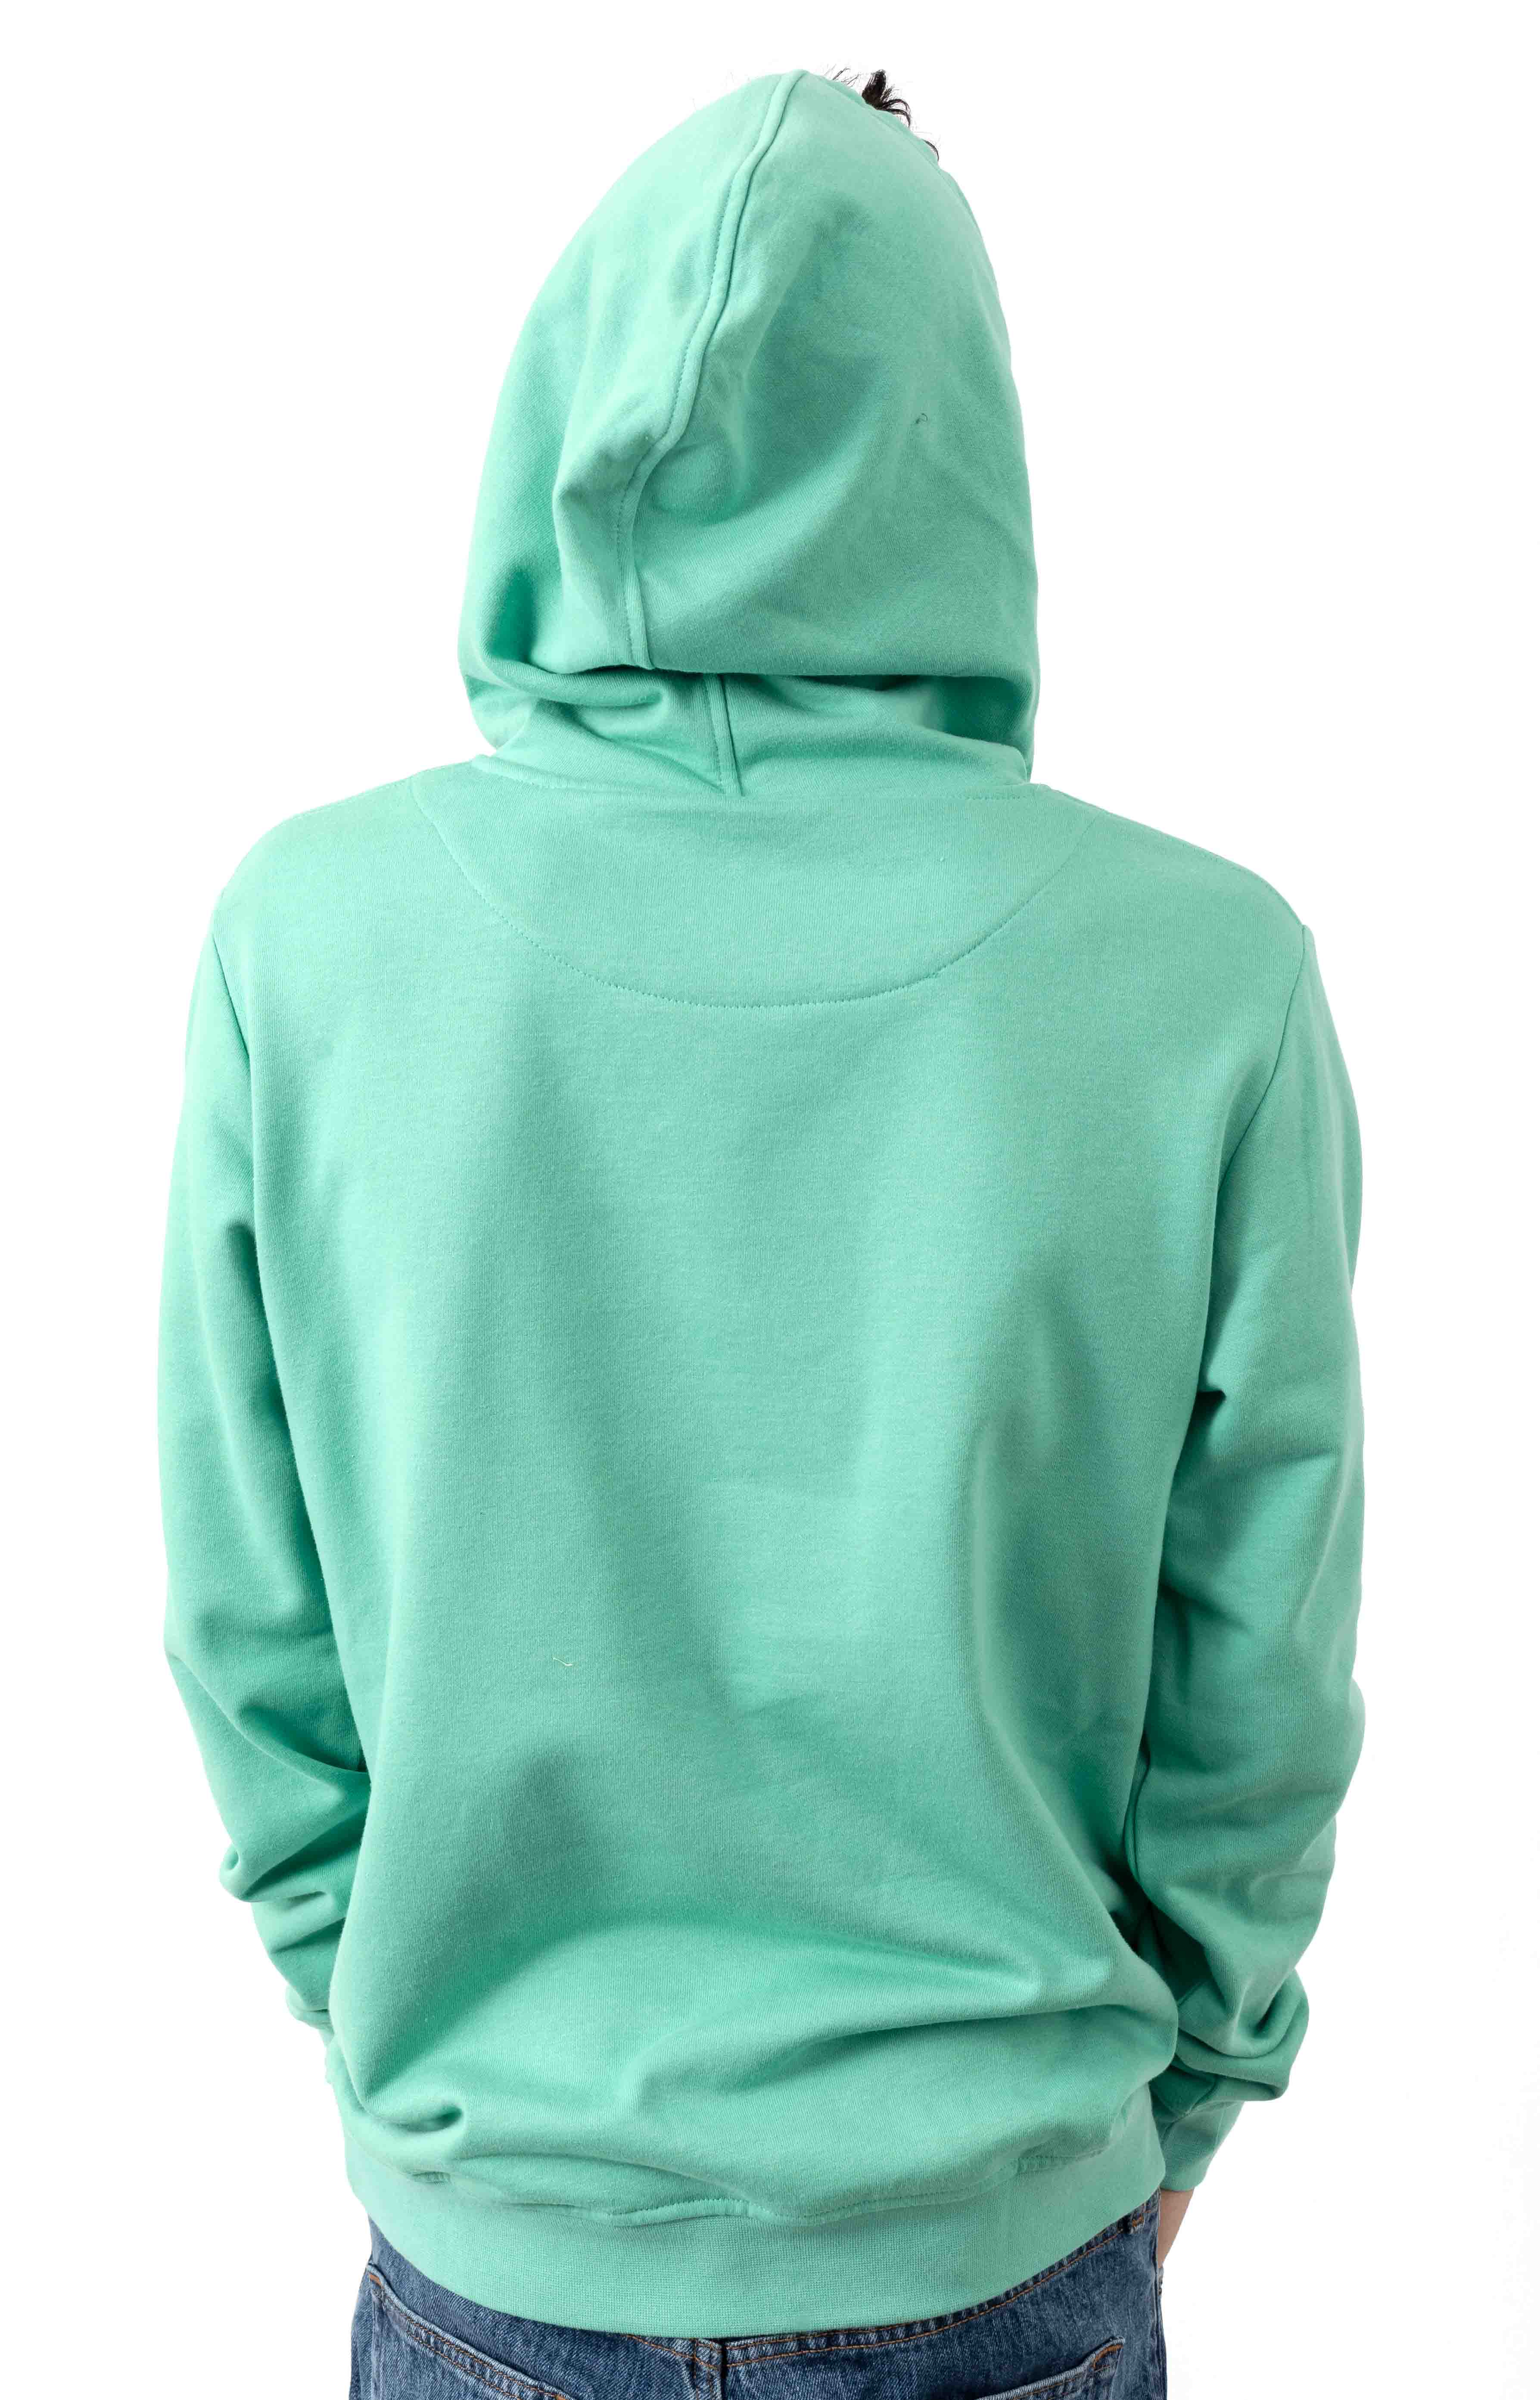 Authentic Zimim Pullover Hoodie - Green/White 3